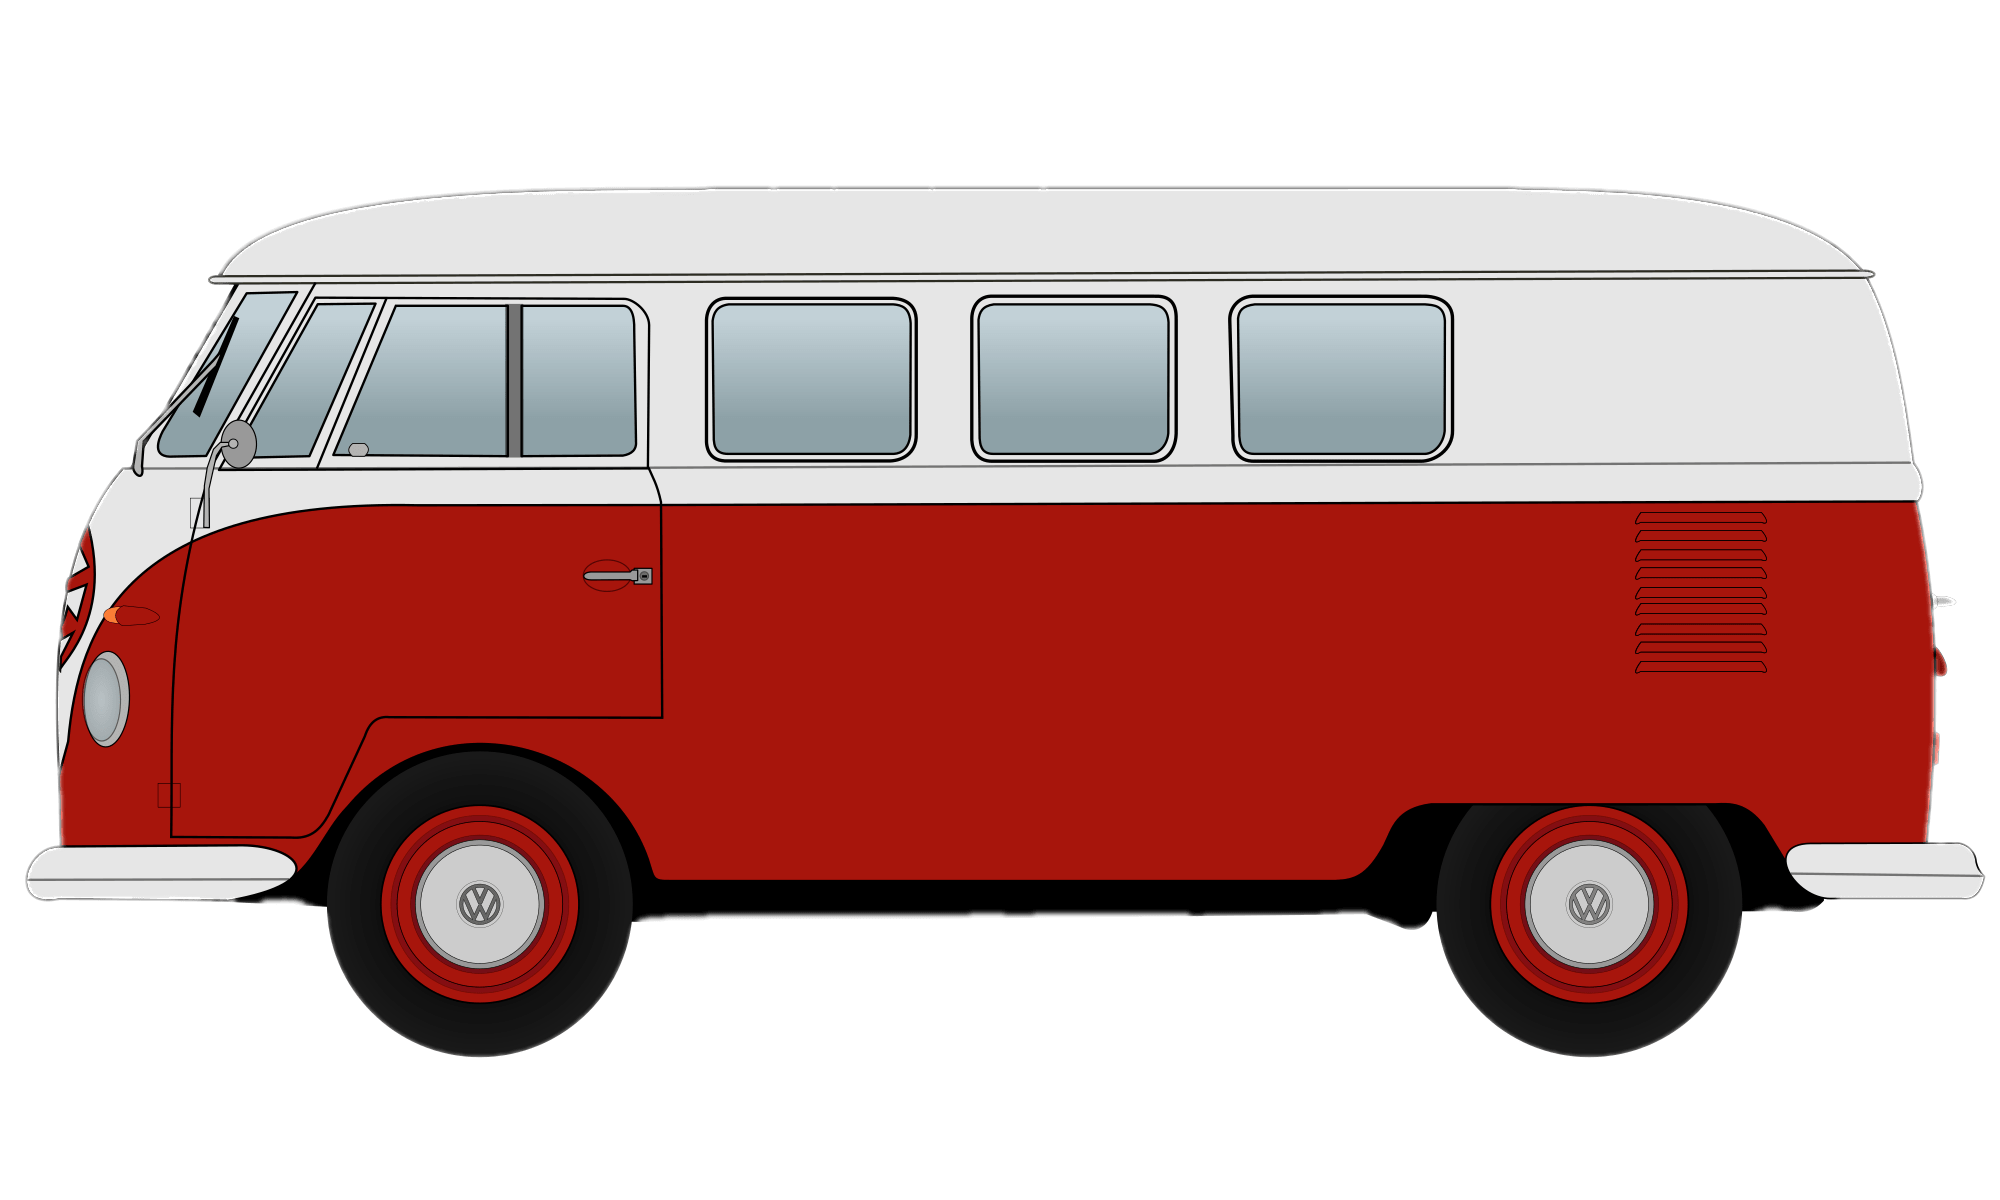 Vw bus png